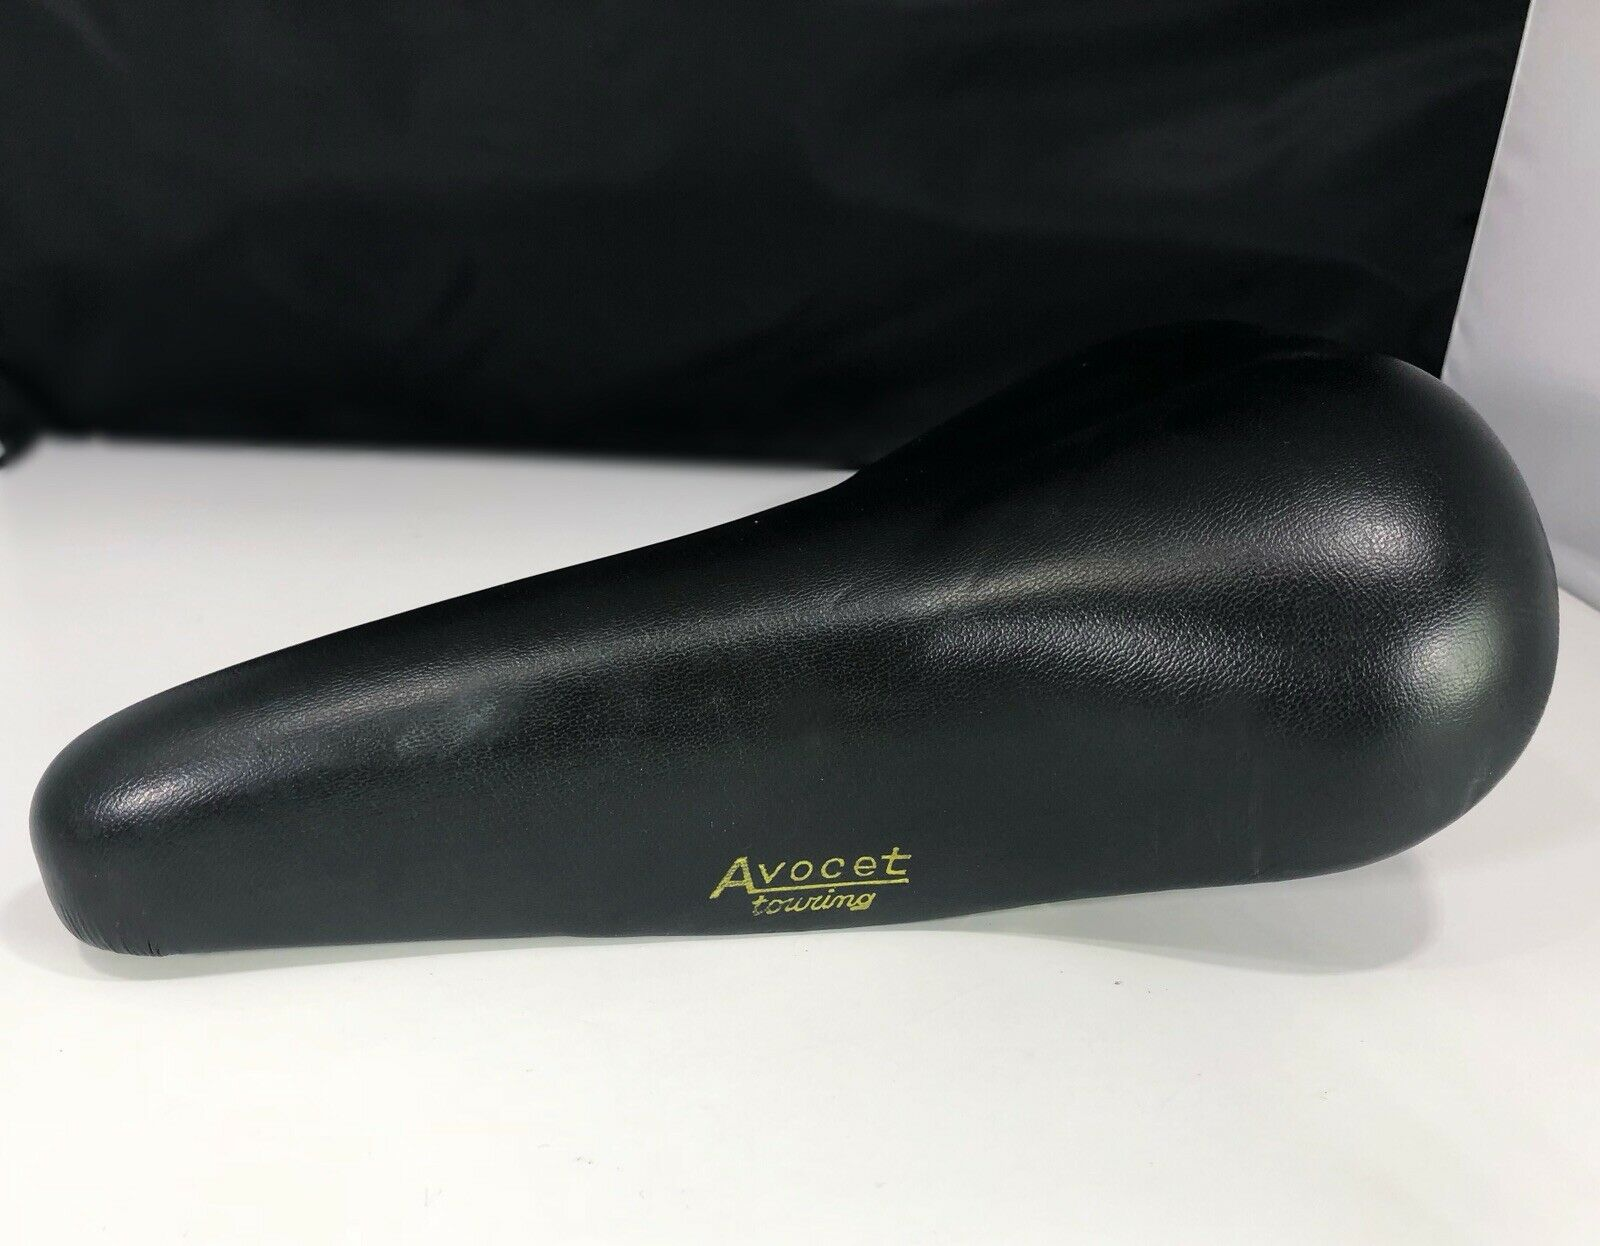 Vintage Avocet touring Genuine Leather Saddle Seat road racing  bike clean  free shipping